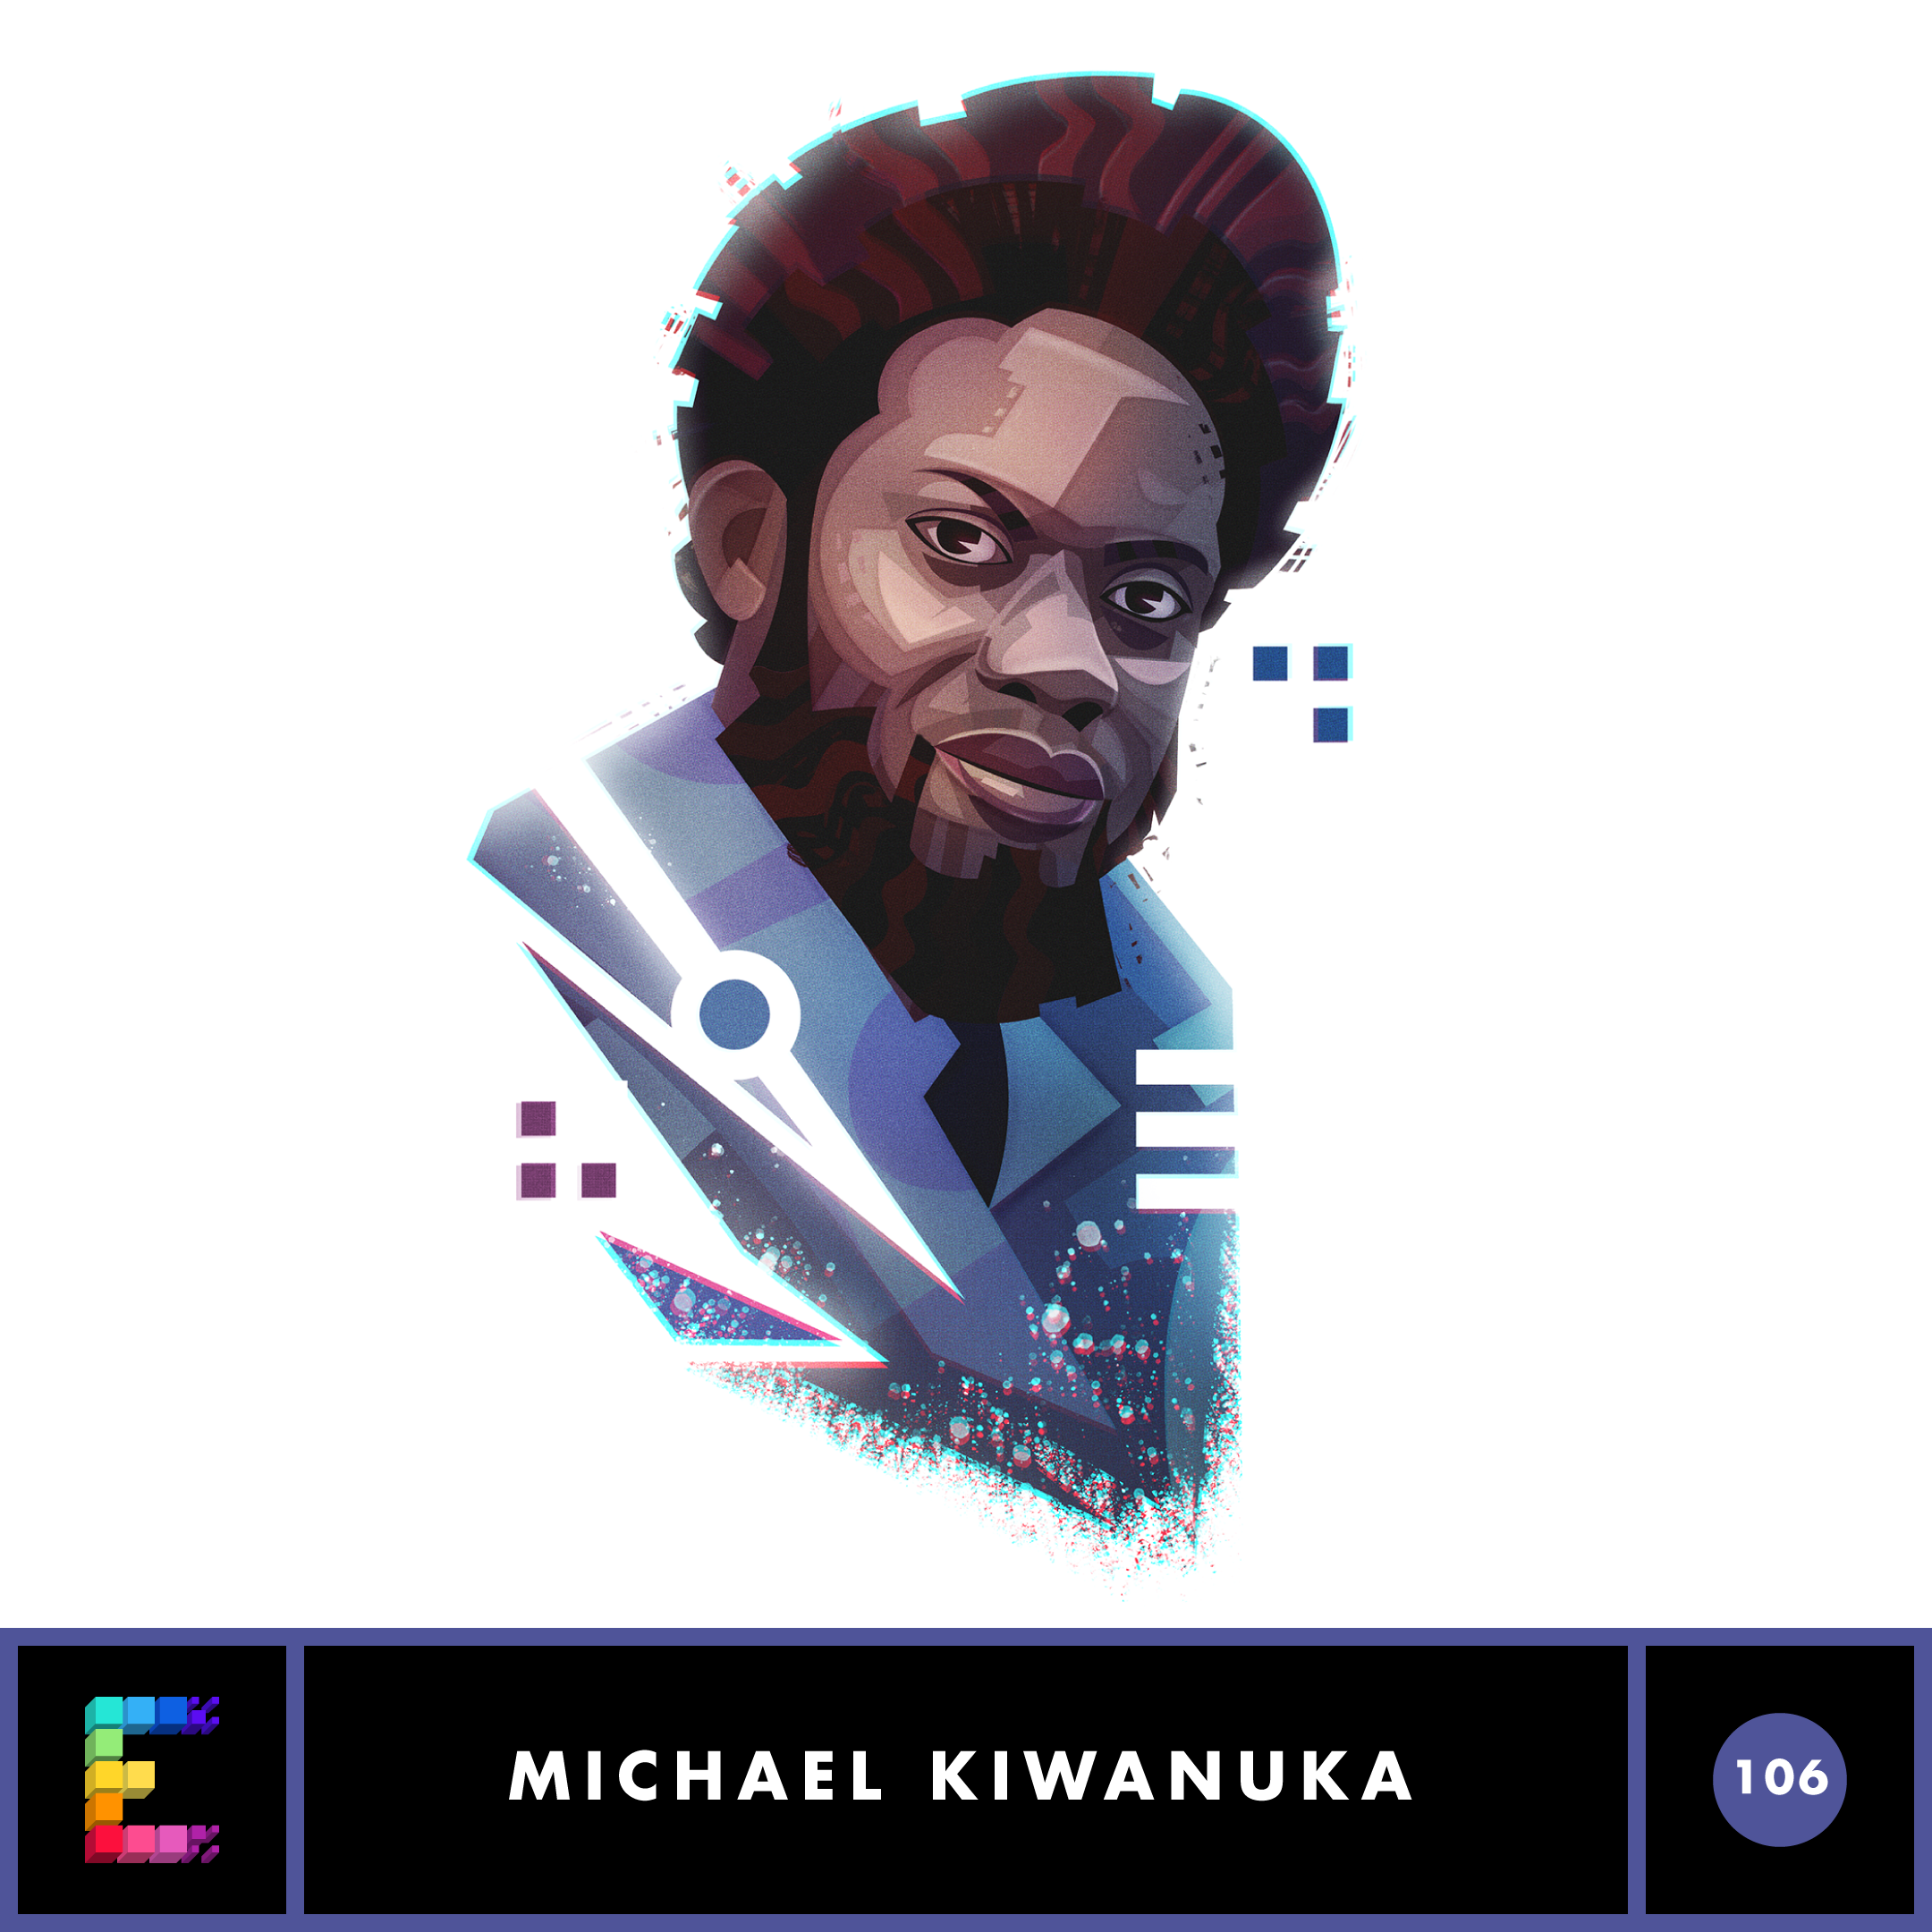 Reissue: Michael Kiwanuka - Black Man in a White World